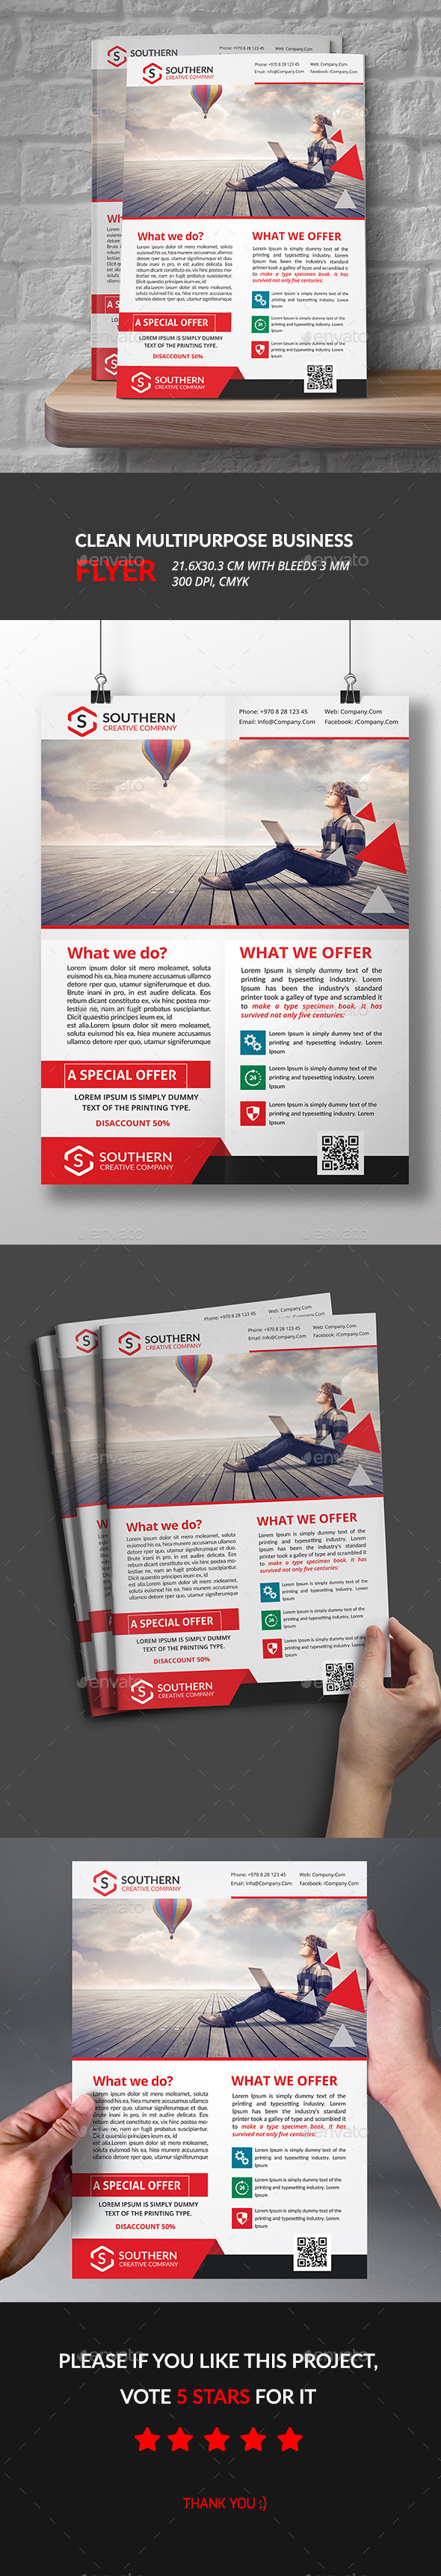 Clean Multipurpose Business Flyer